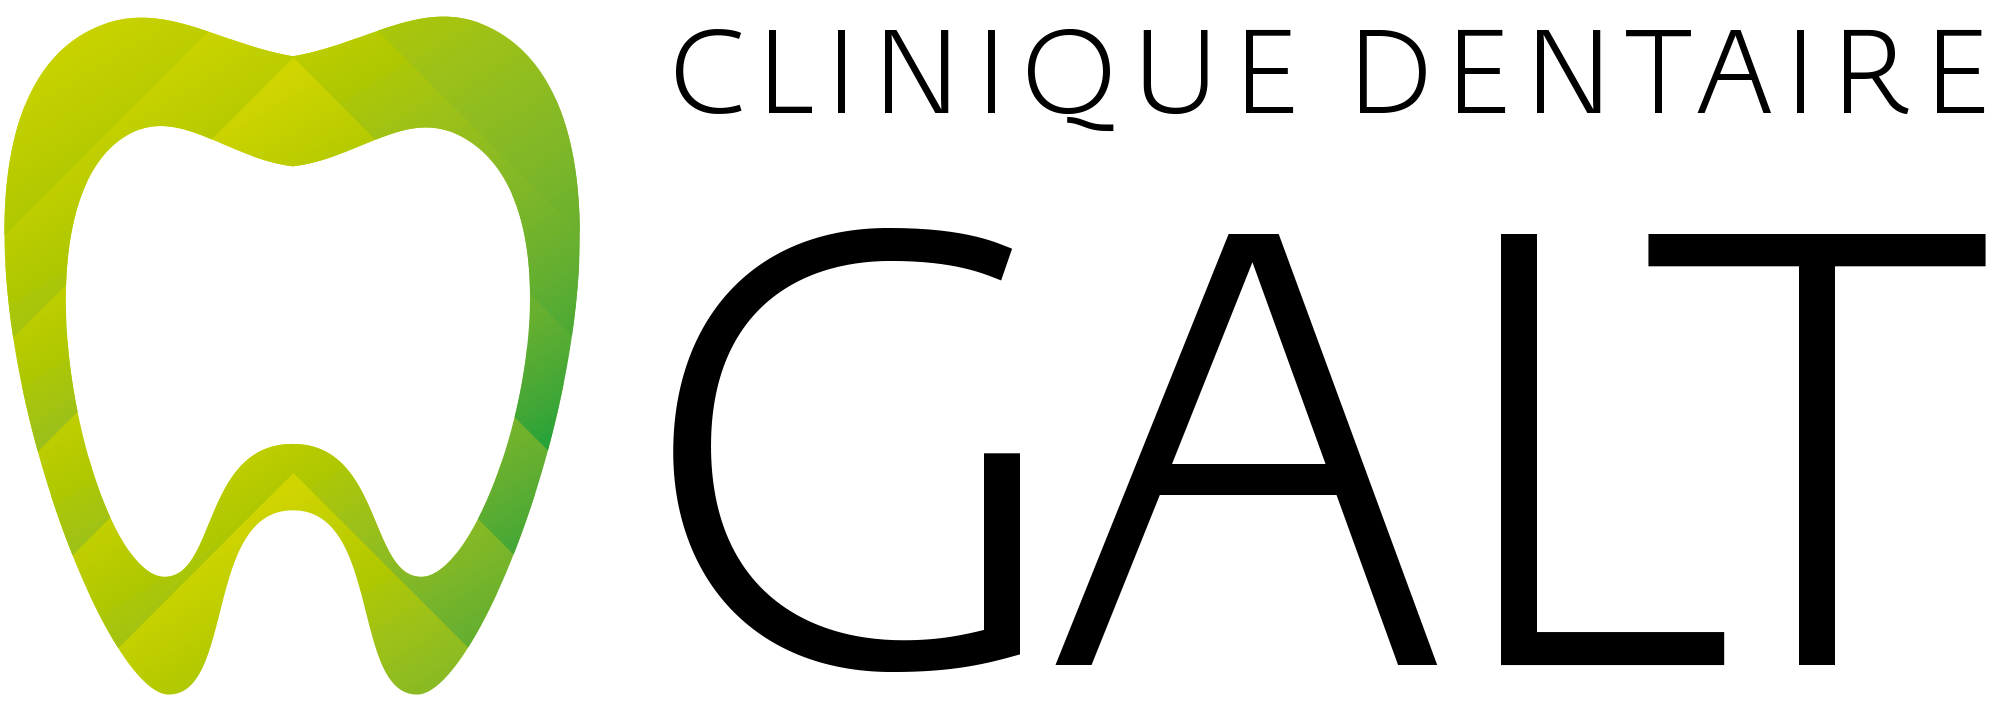 Clinique dentaire Galt